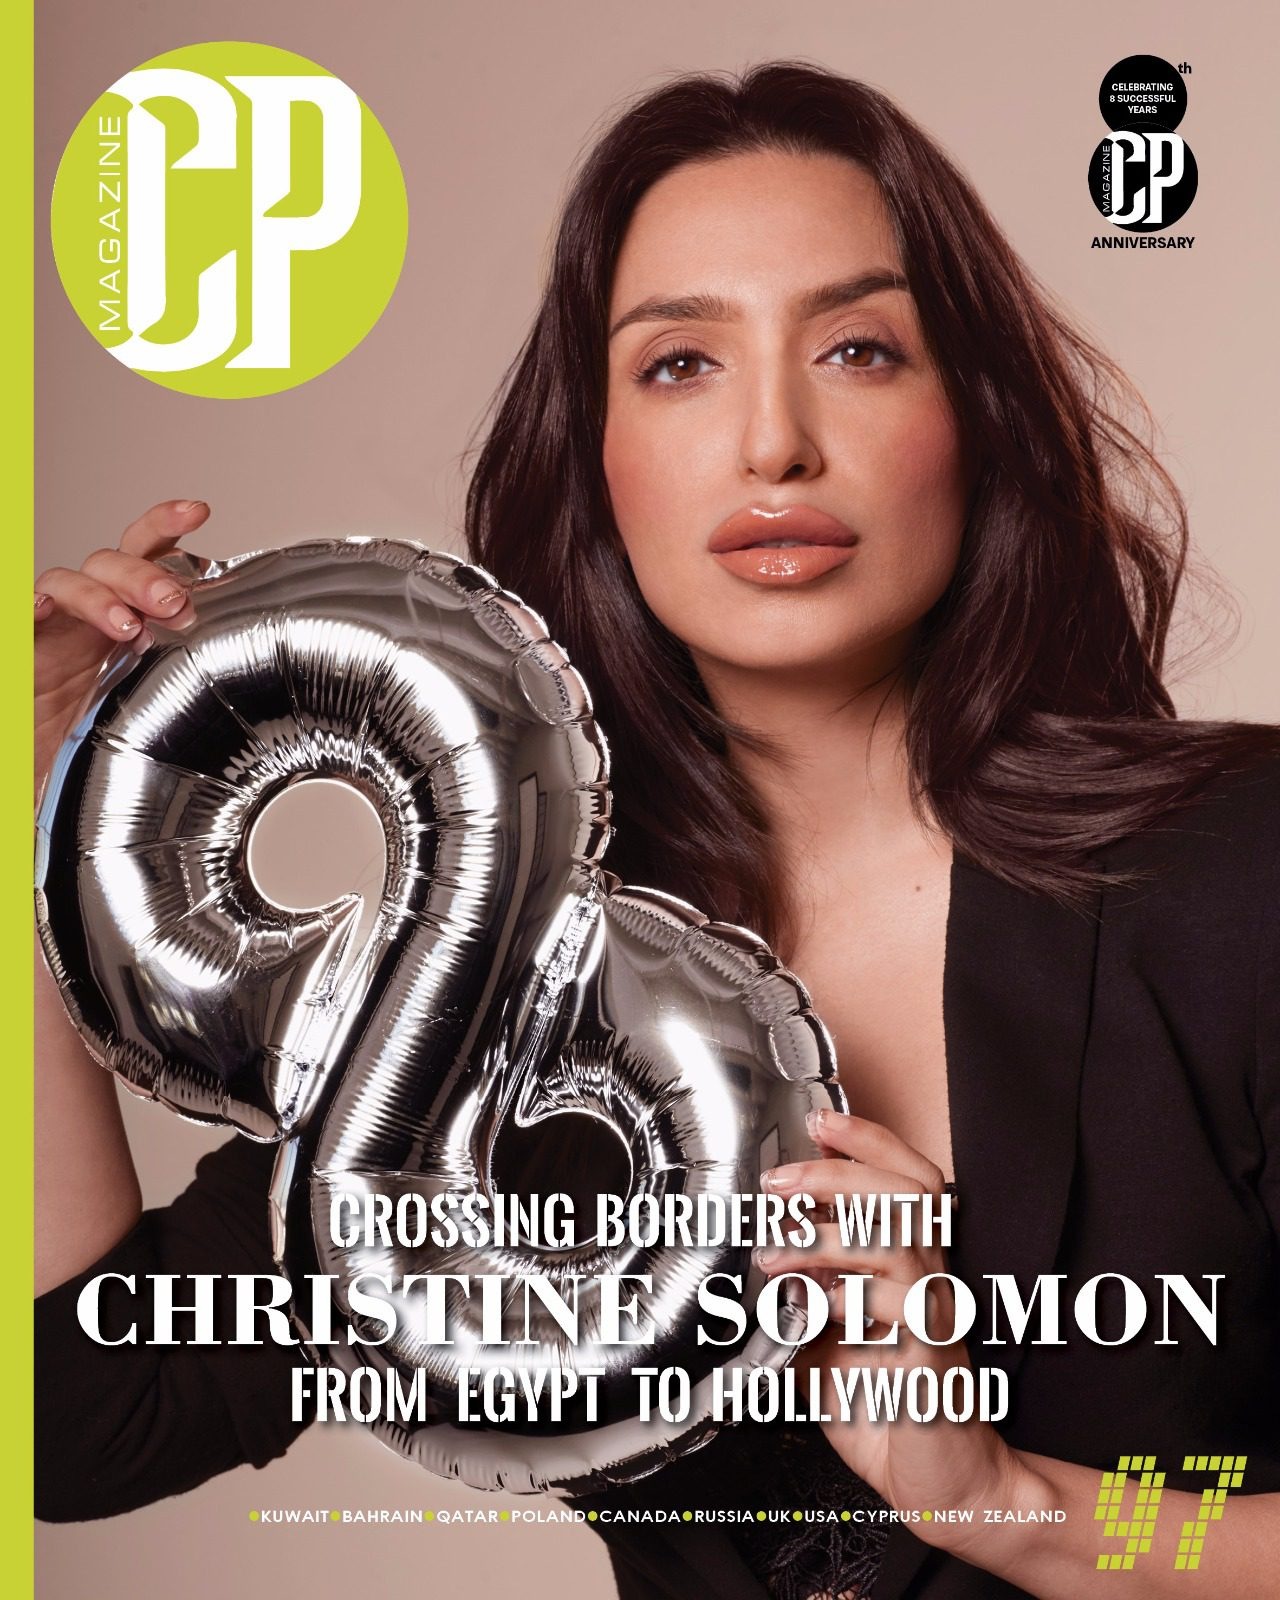 CP Magazine Cover with Christine Solomon photographed by Efren Beltran